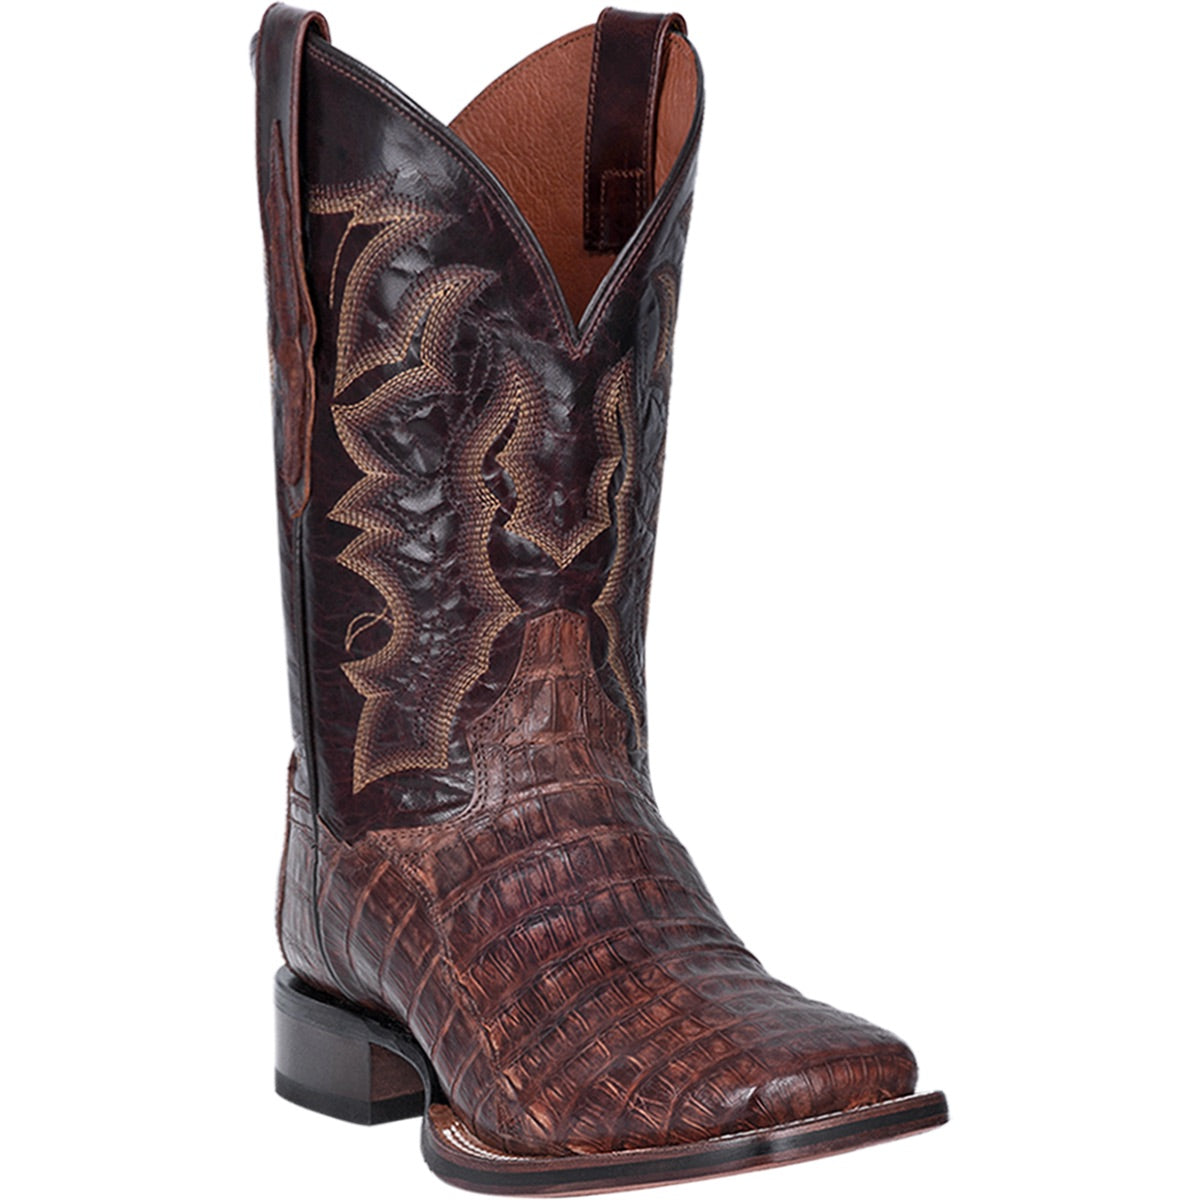 KINGSLY CAIMAN BOOT 12134318932010